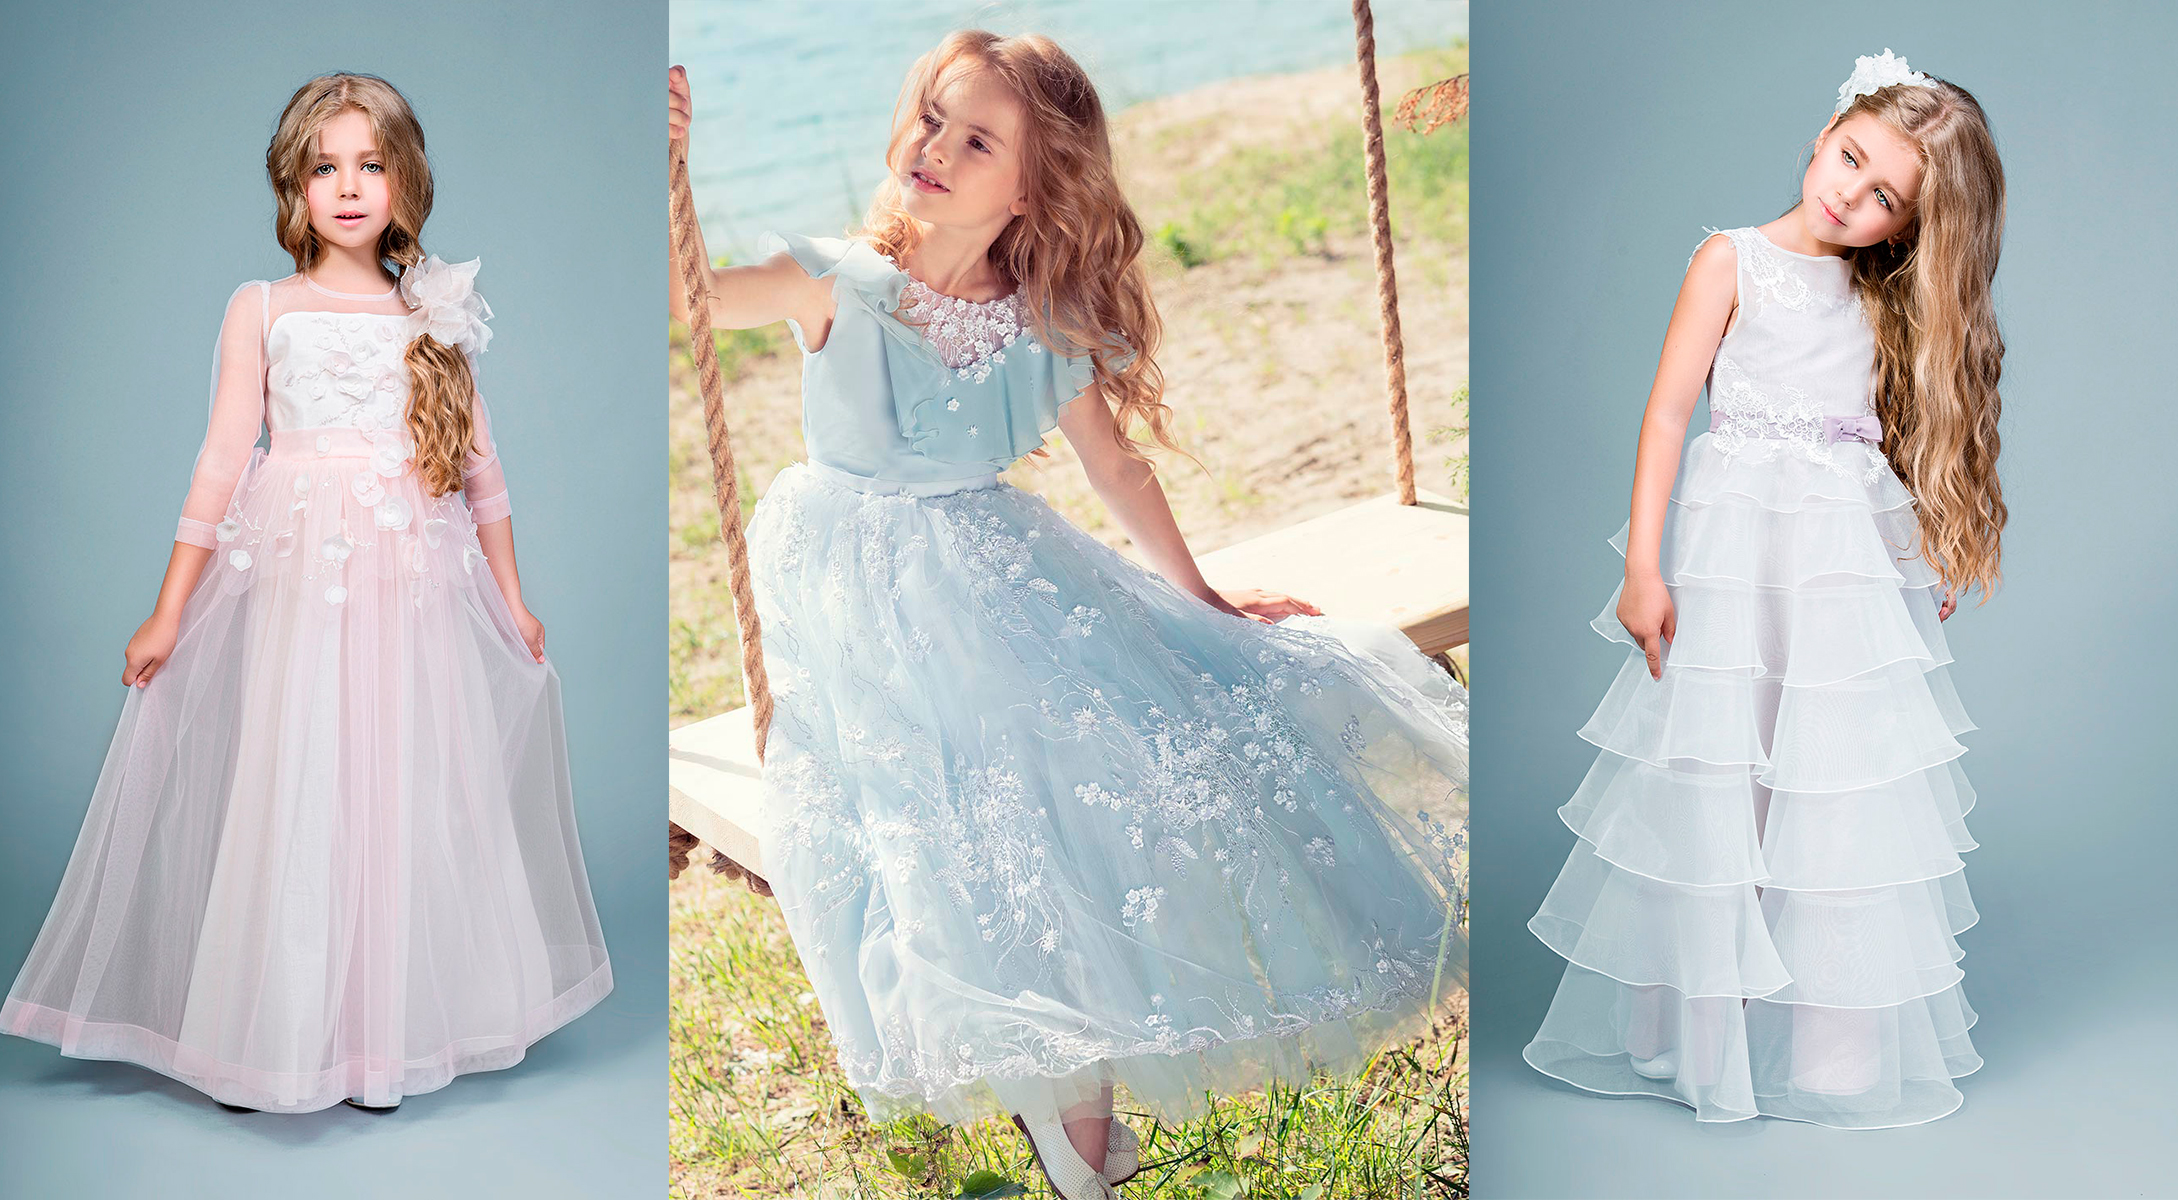 Luxury Flower Girl Dresses By Papilio Top Picks For The Spring